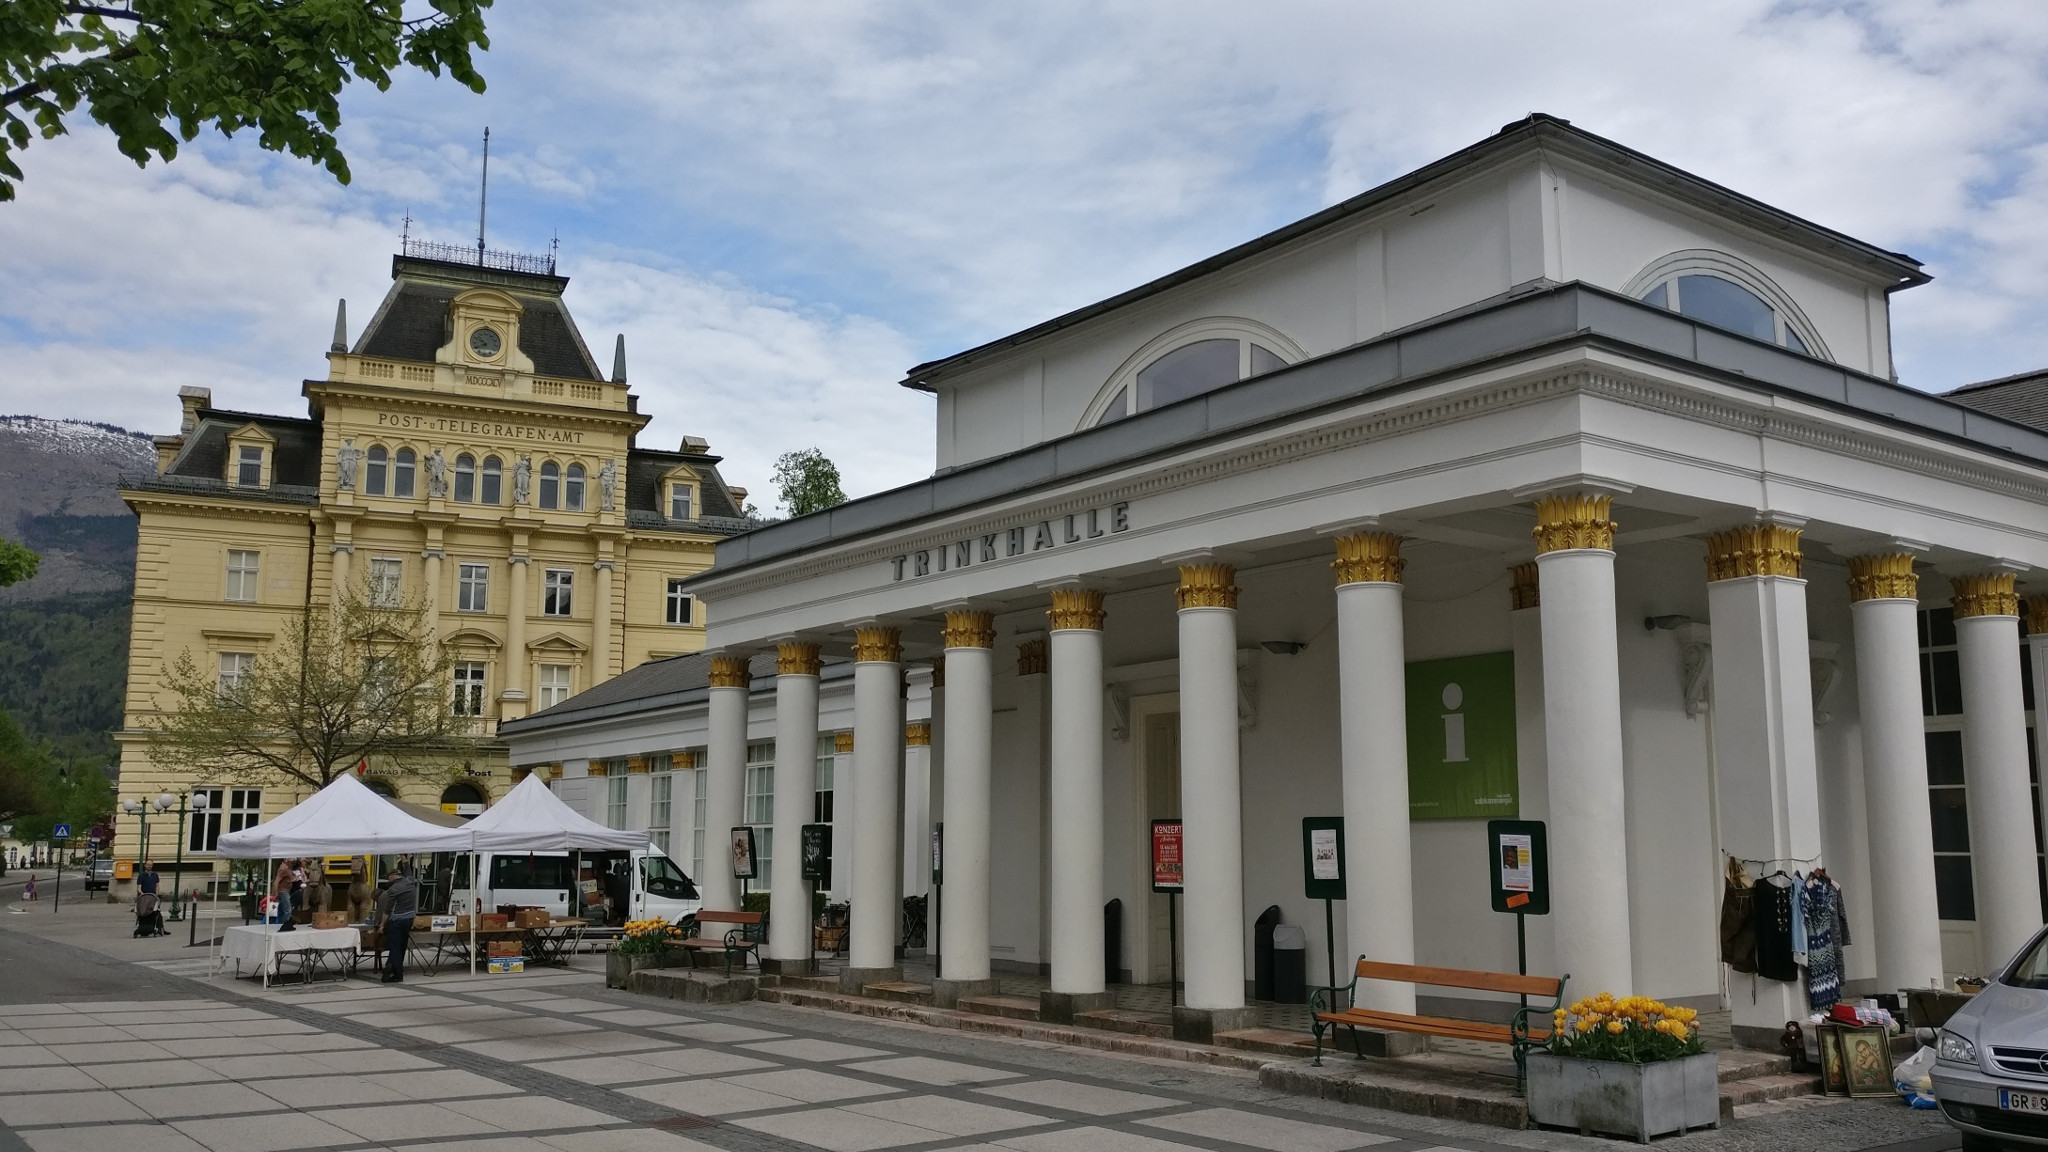 Post Office and the Trinkhalle in Bad Ischl